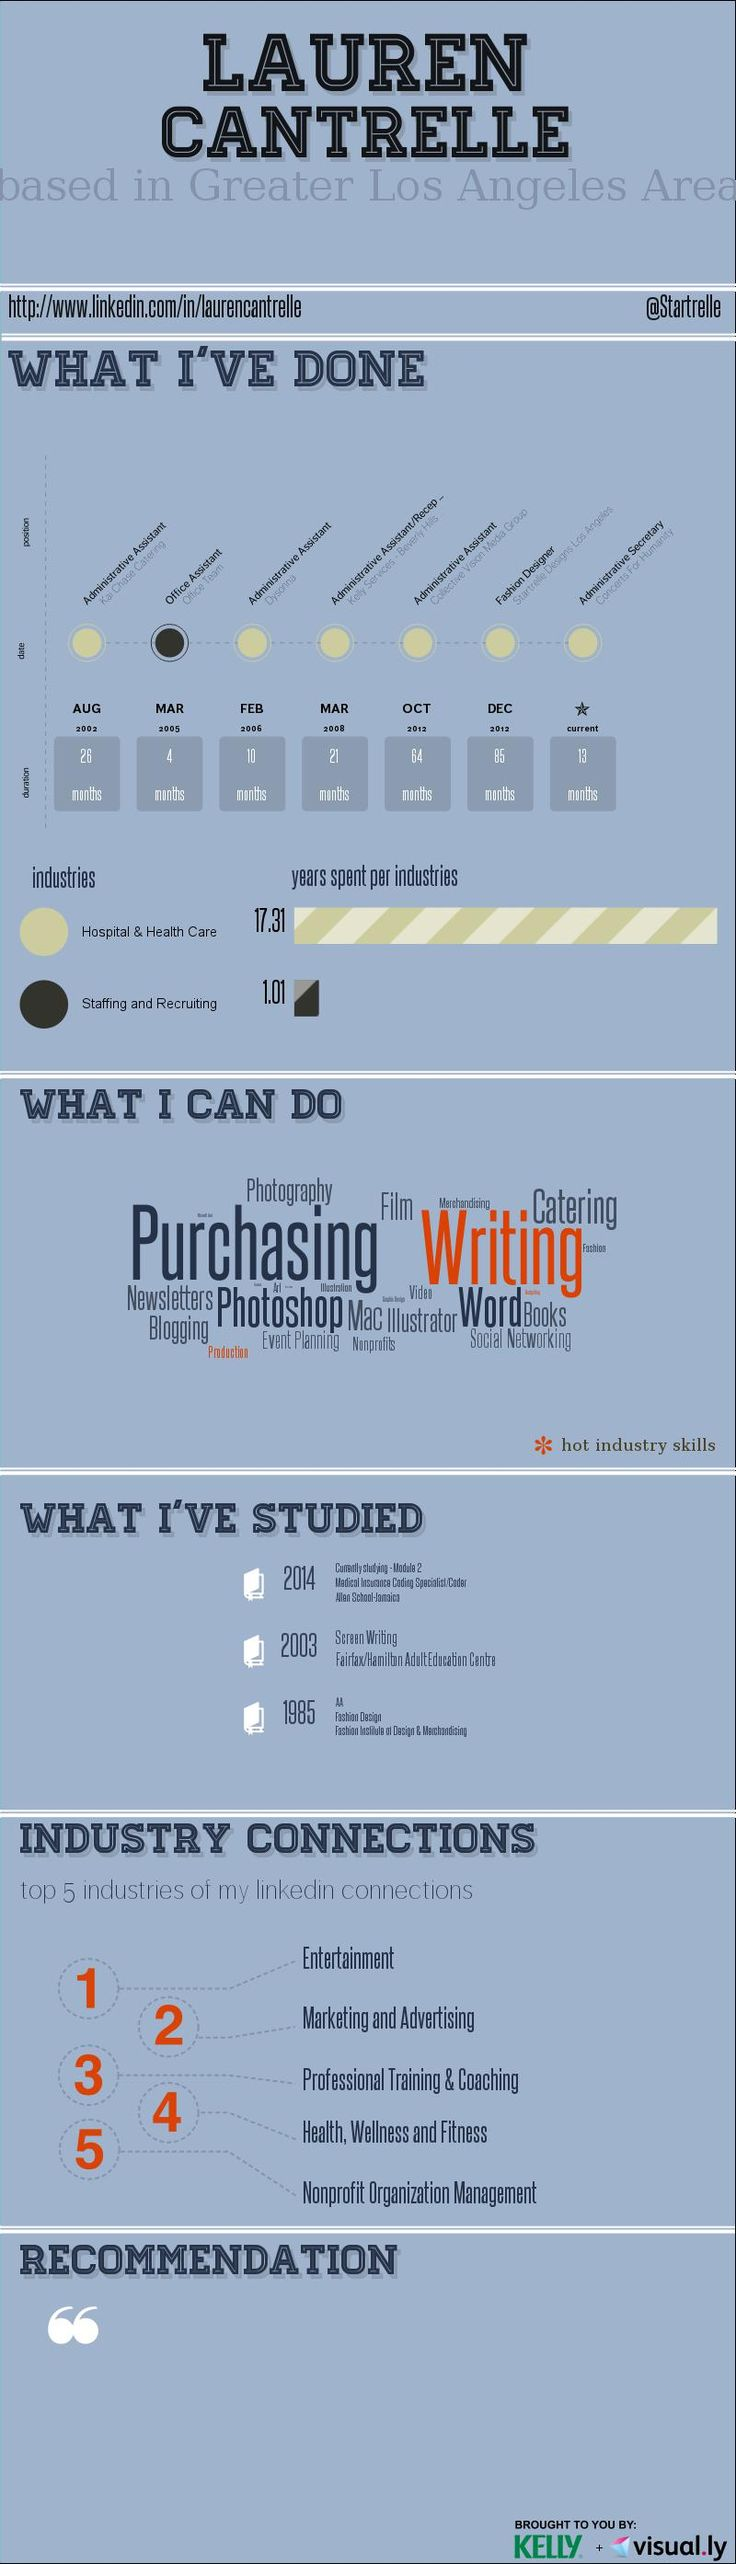 36 best infographic resume images on Pinterest | Infographic ...